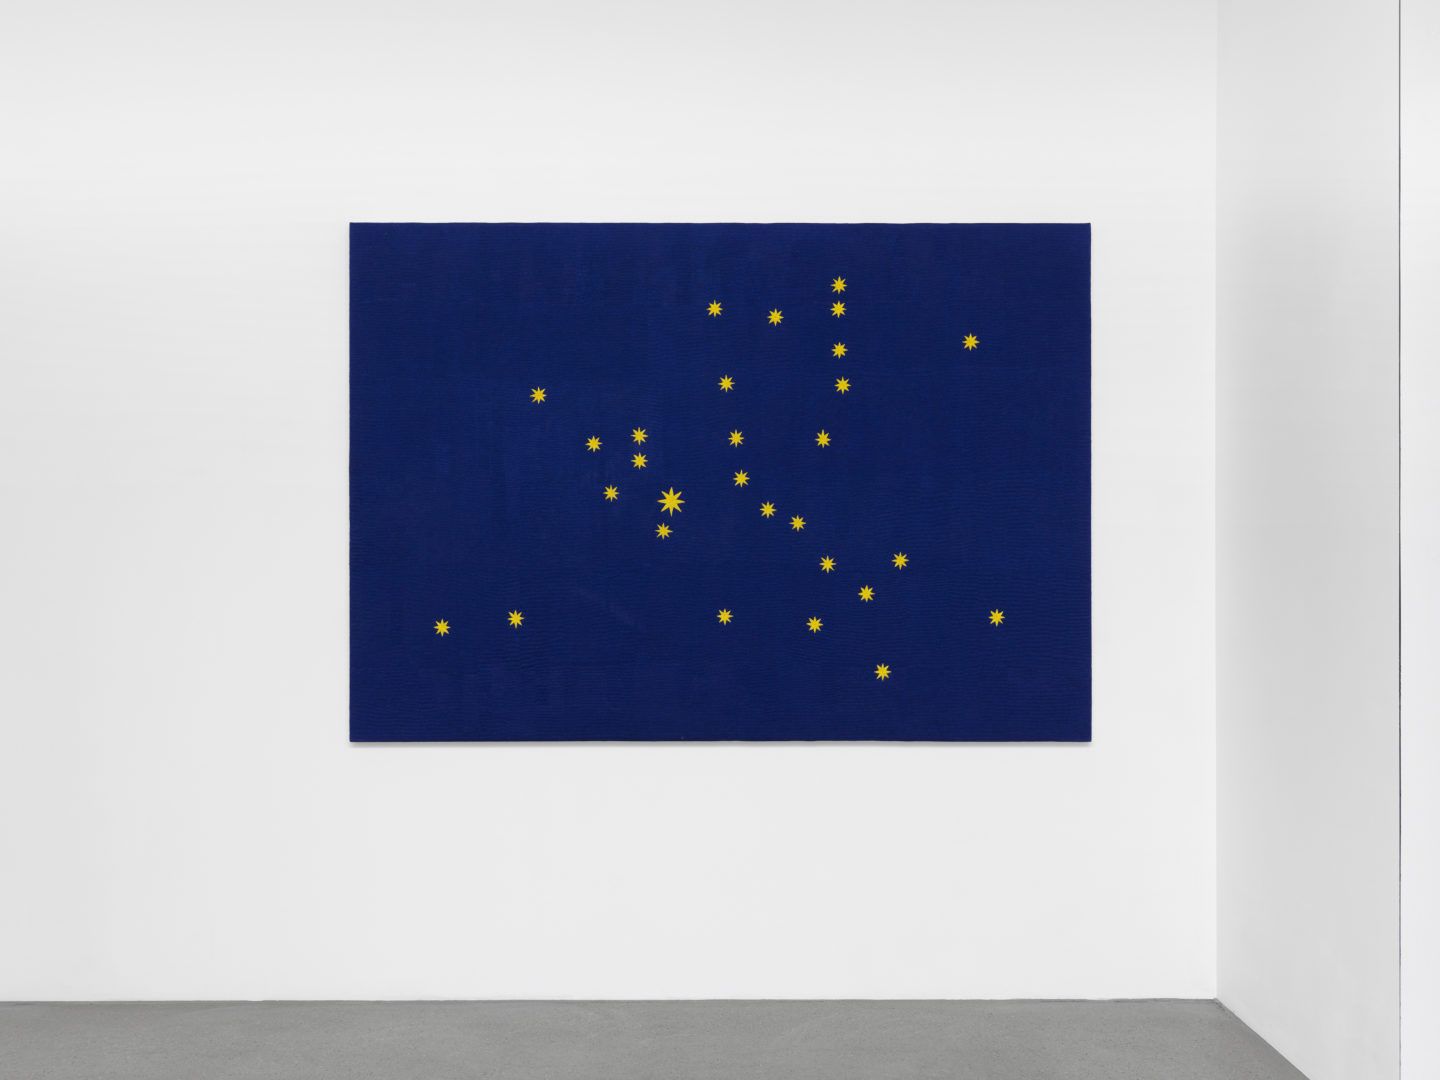 Exhibition View Mitchel Anderson «Recurrence (A Flag For Europe), 2018» at Galerie Maria Bernheim, Zurich / Photo: Annik Wetter / Courtesy: the artist and Galerie Maria Bernheim